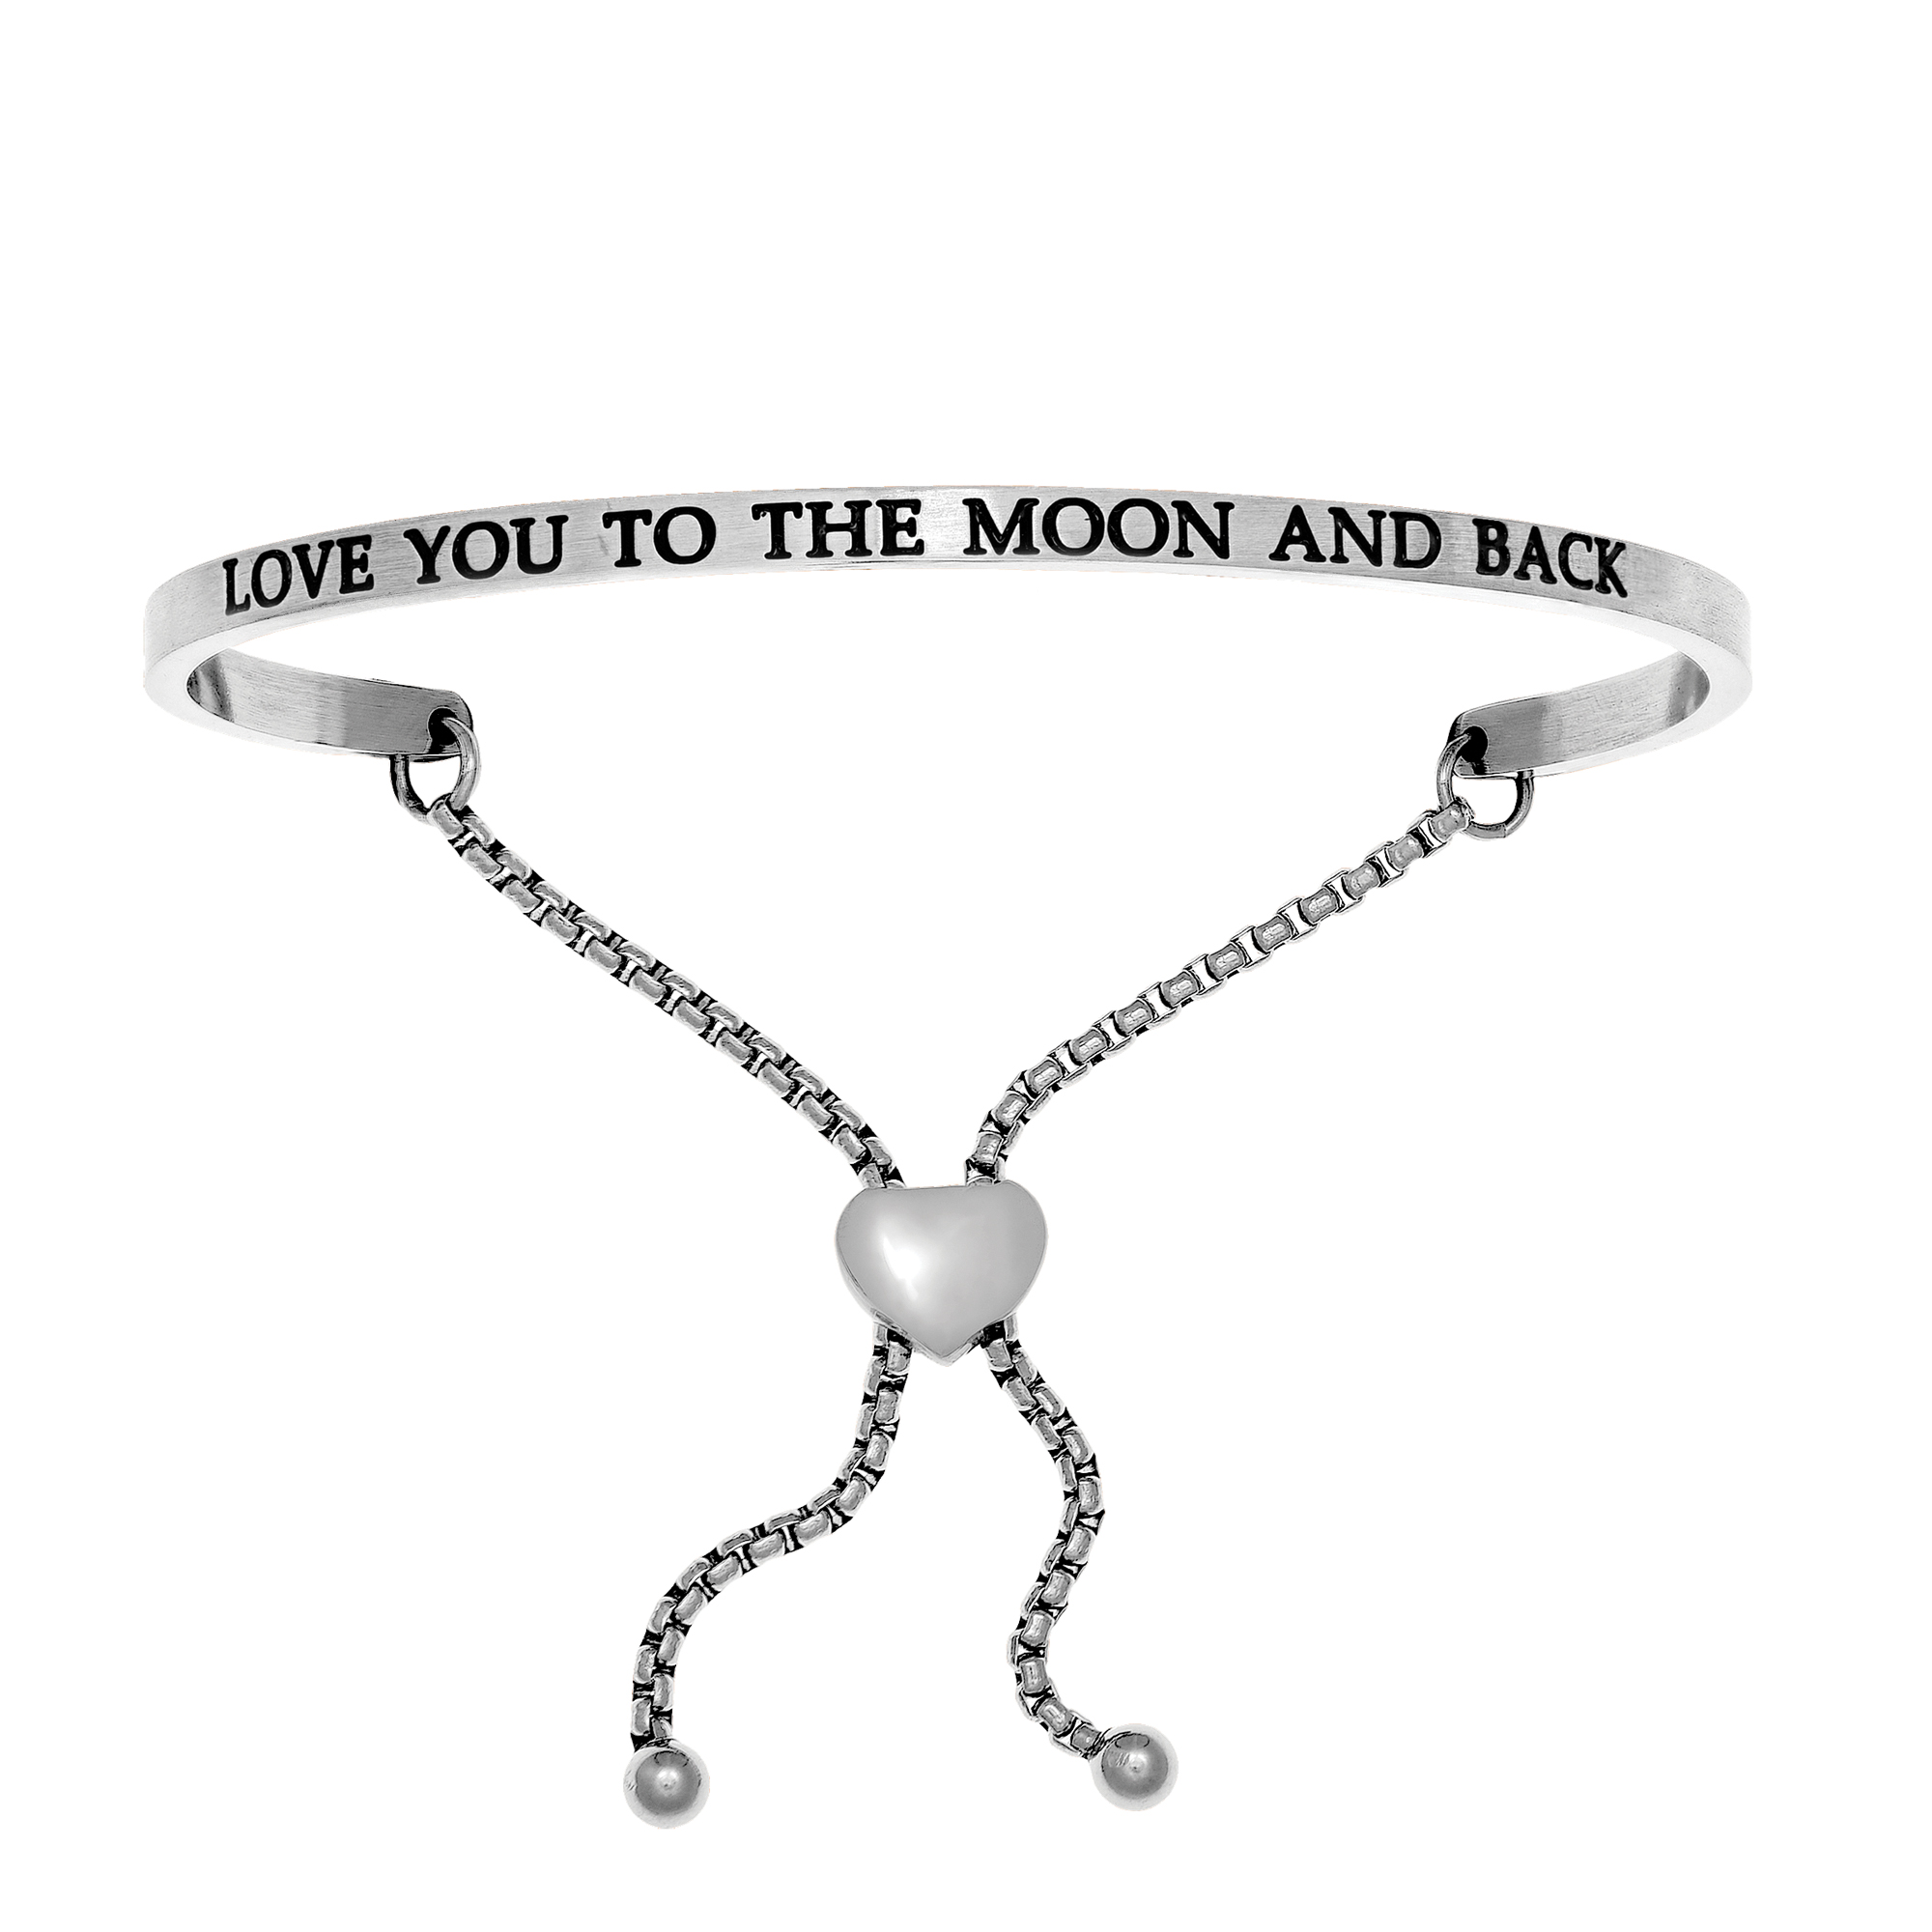 Intuitions Stainless Steel LOVE YOU TO THE MOON AND BACK Diamond Accent Adjustable Bracelet Each of these bracelets carries a personal message of inspiration, spirituality or just plain fun. Meant to be worn alone or stacked together for a smart, contemporary look, they're a great self-purchase or as a gift for family or friends. Intuitions are made of stainless steel and come in two styles standard cuff or friendship and fit practically any wrist. Intuitions Jewelry makes the difference in your daily life by designing and creating bracelets and bangles with motivational quotes to inspire you and your loved ones. Giving back $.25 of each bracelet to BABY2BABY